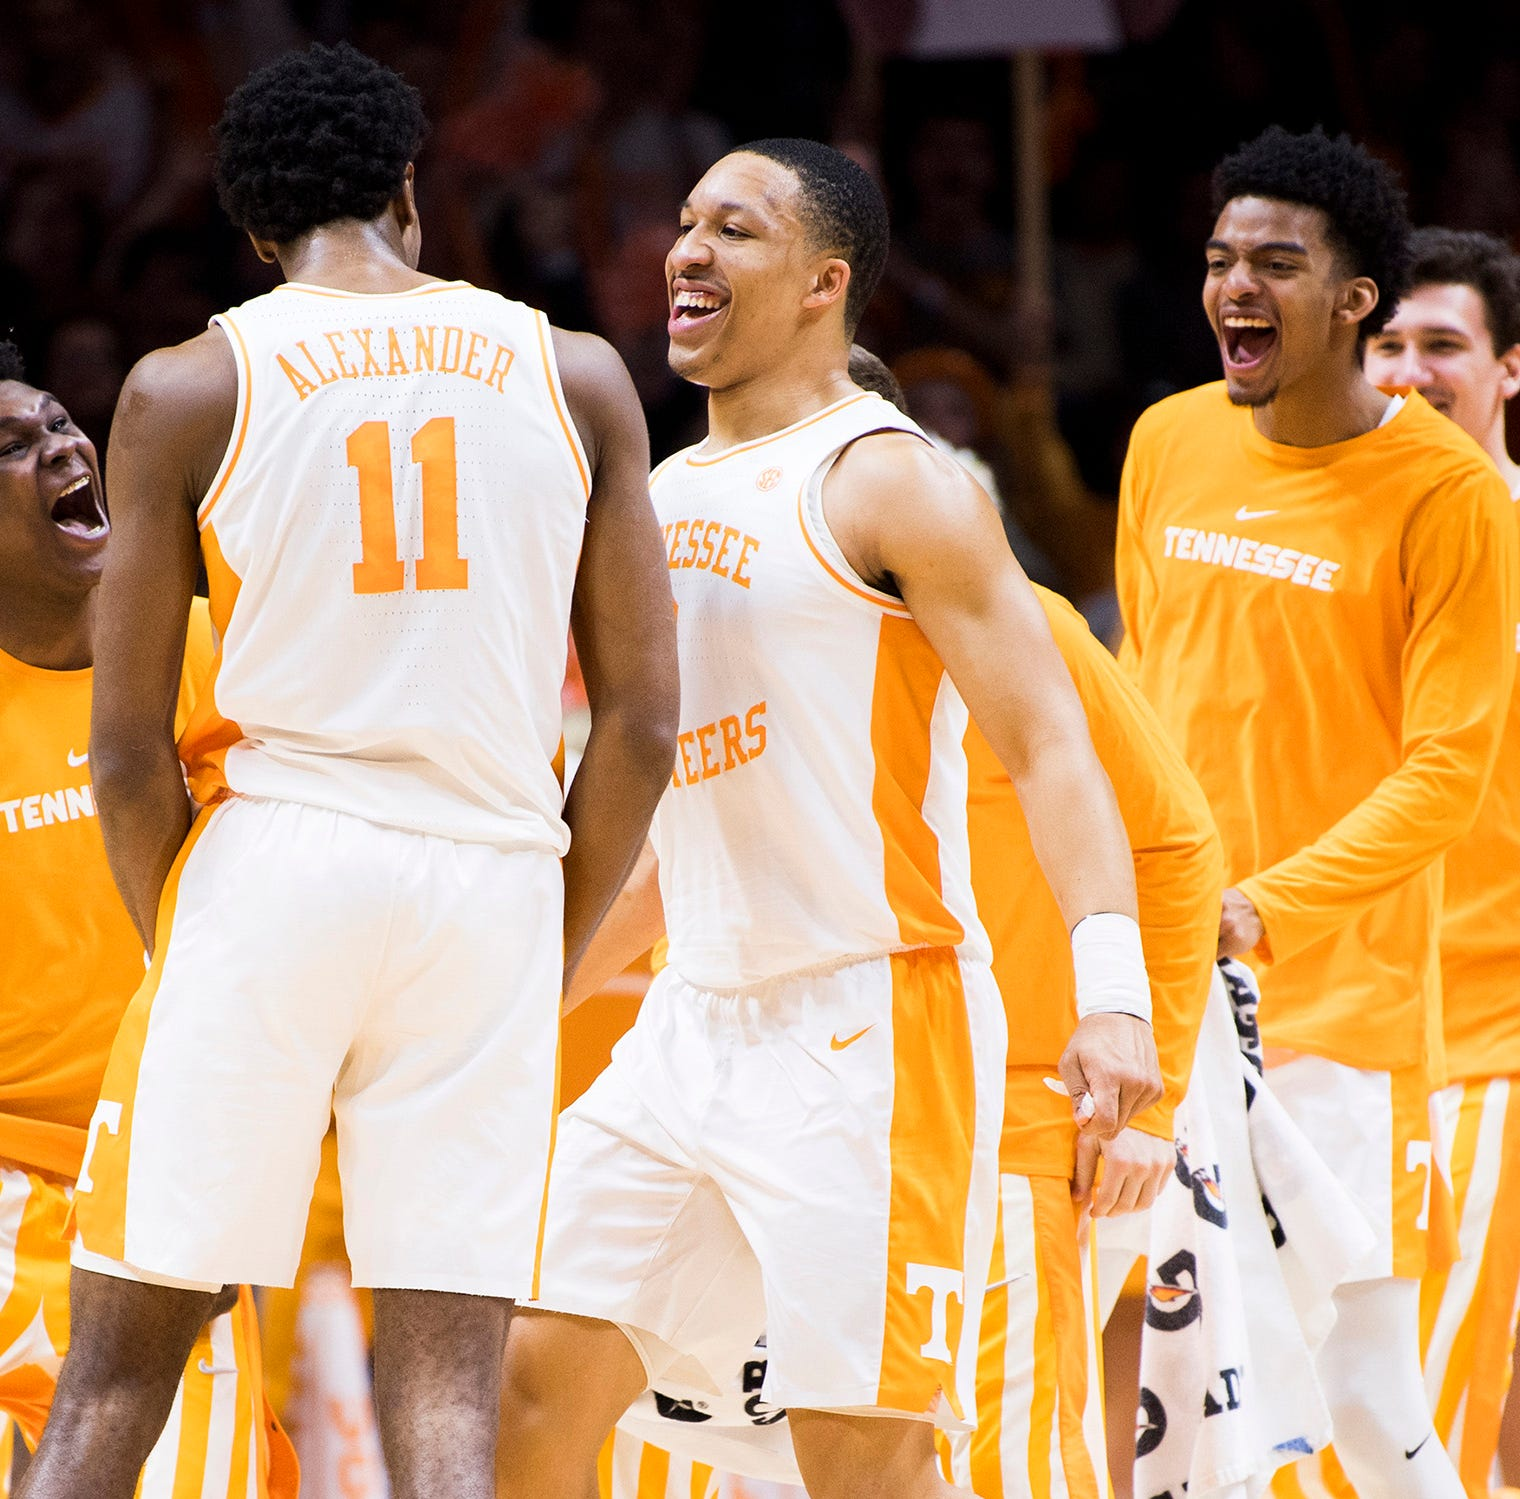 Grant Williams says farewell to Tennessee basketball on social media